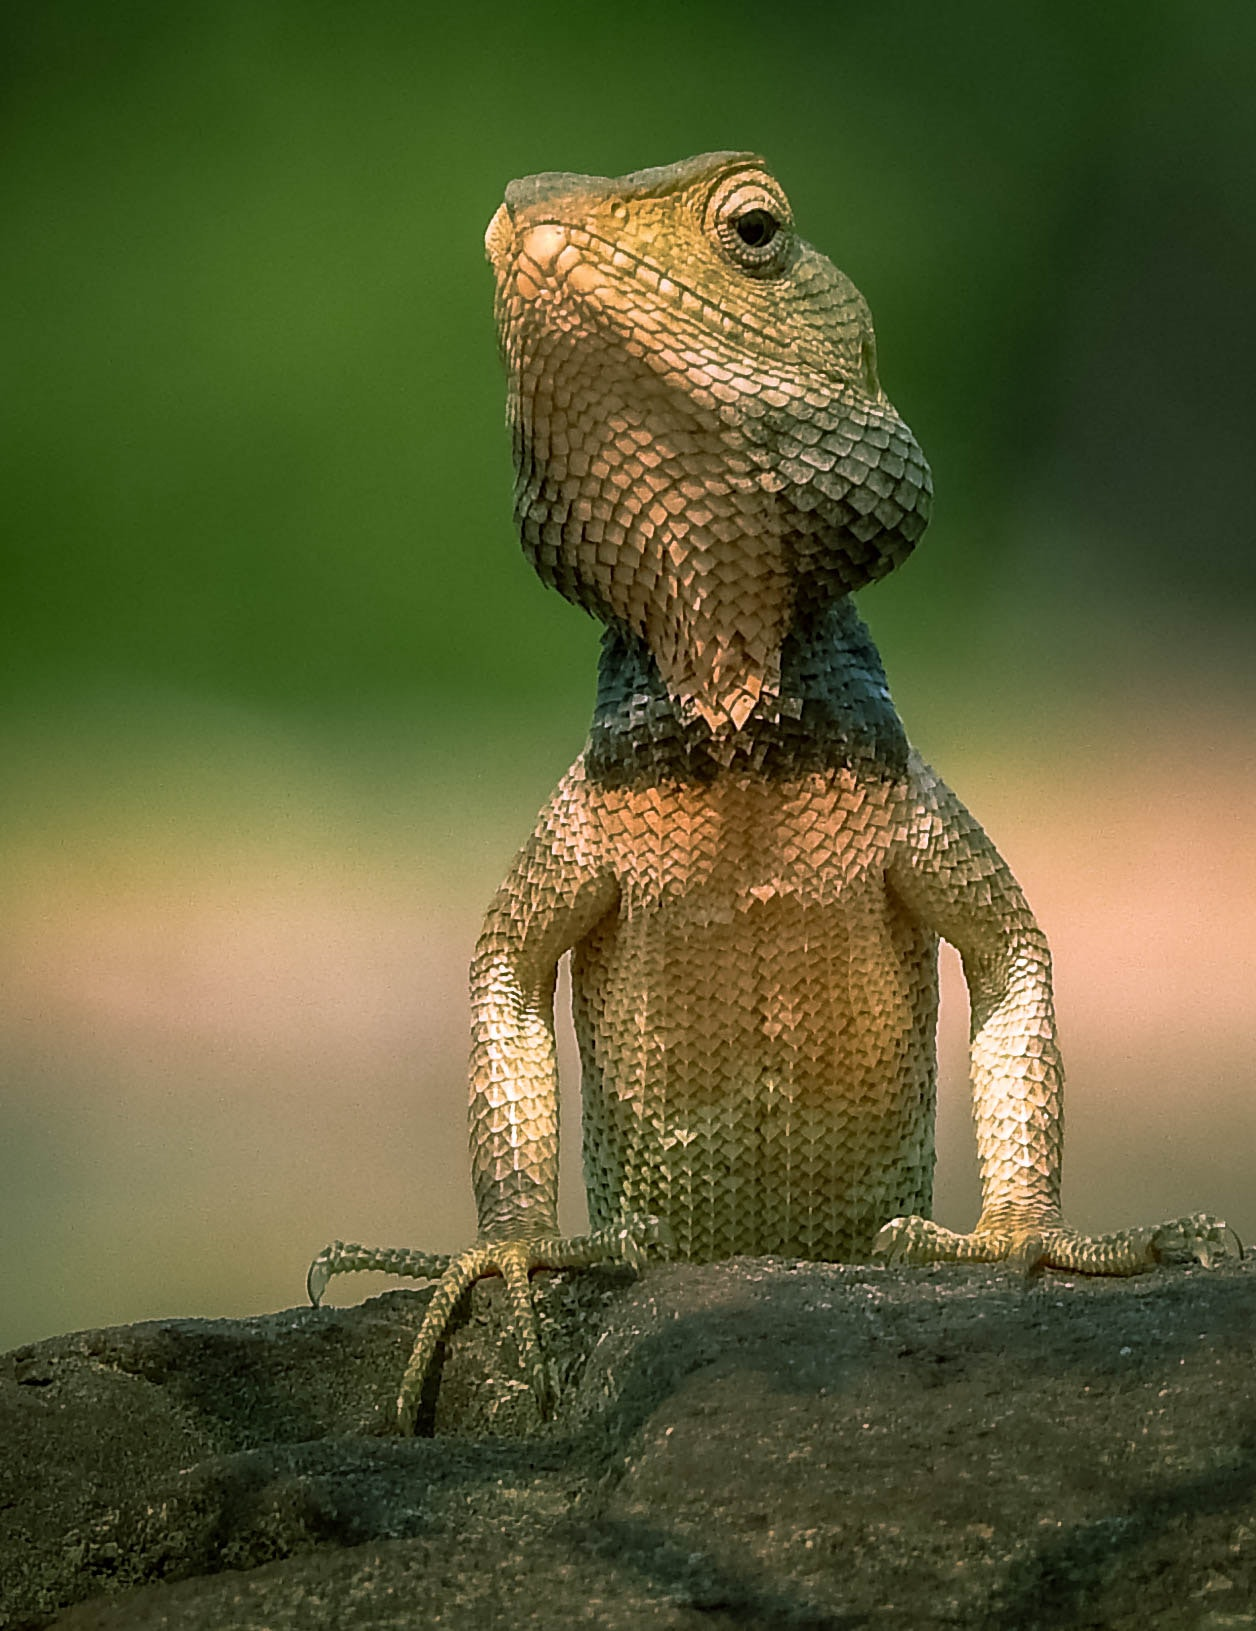 Free stock photo of Garden lizard